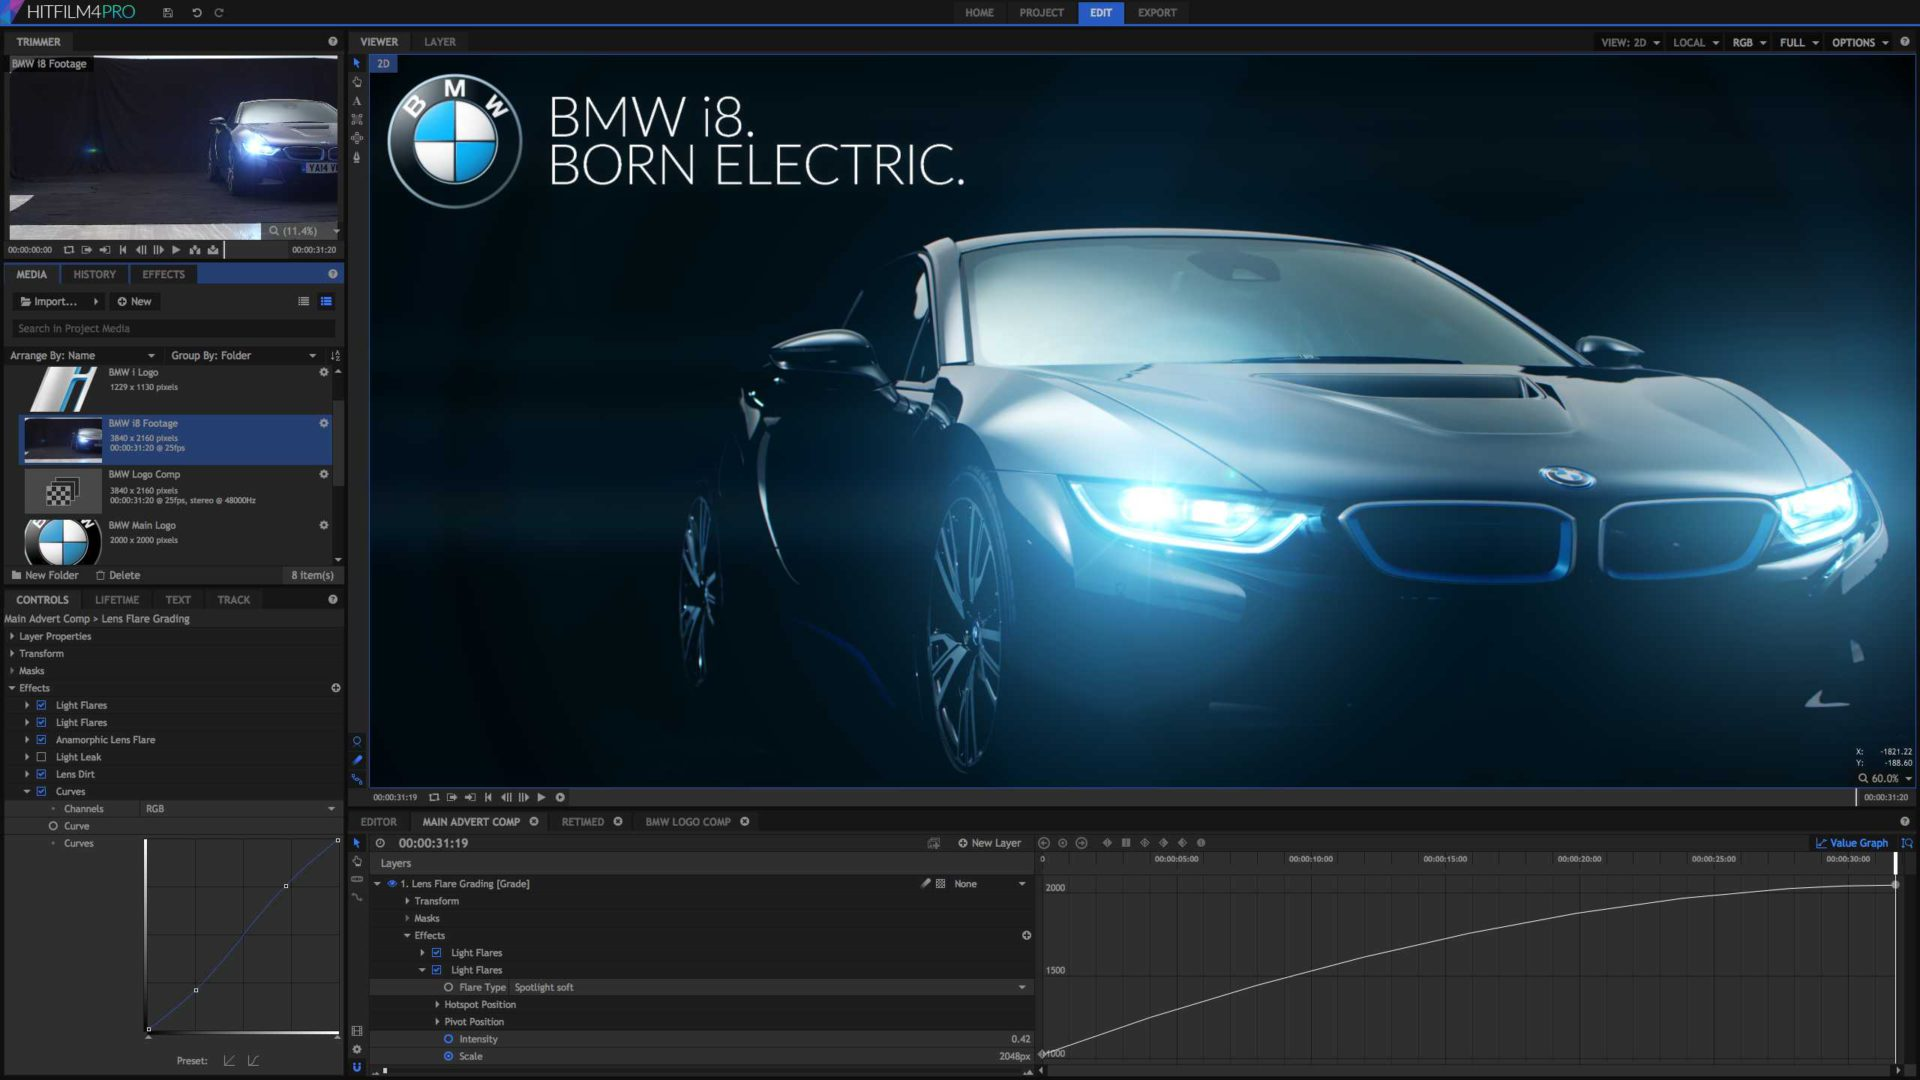 BMW effects in HitFilm Pro